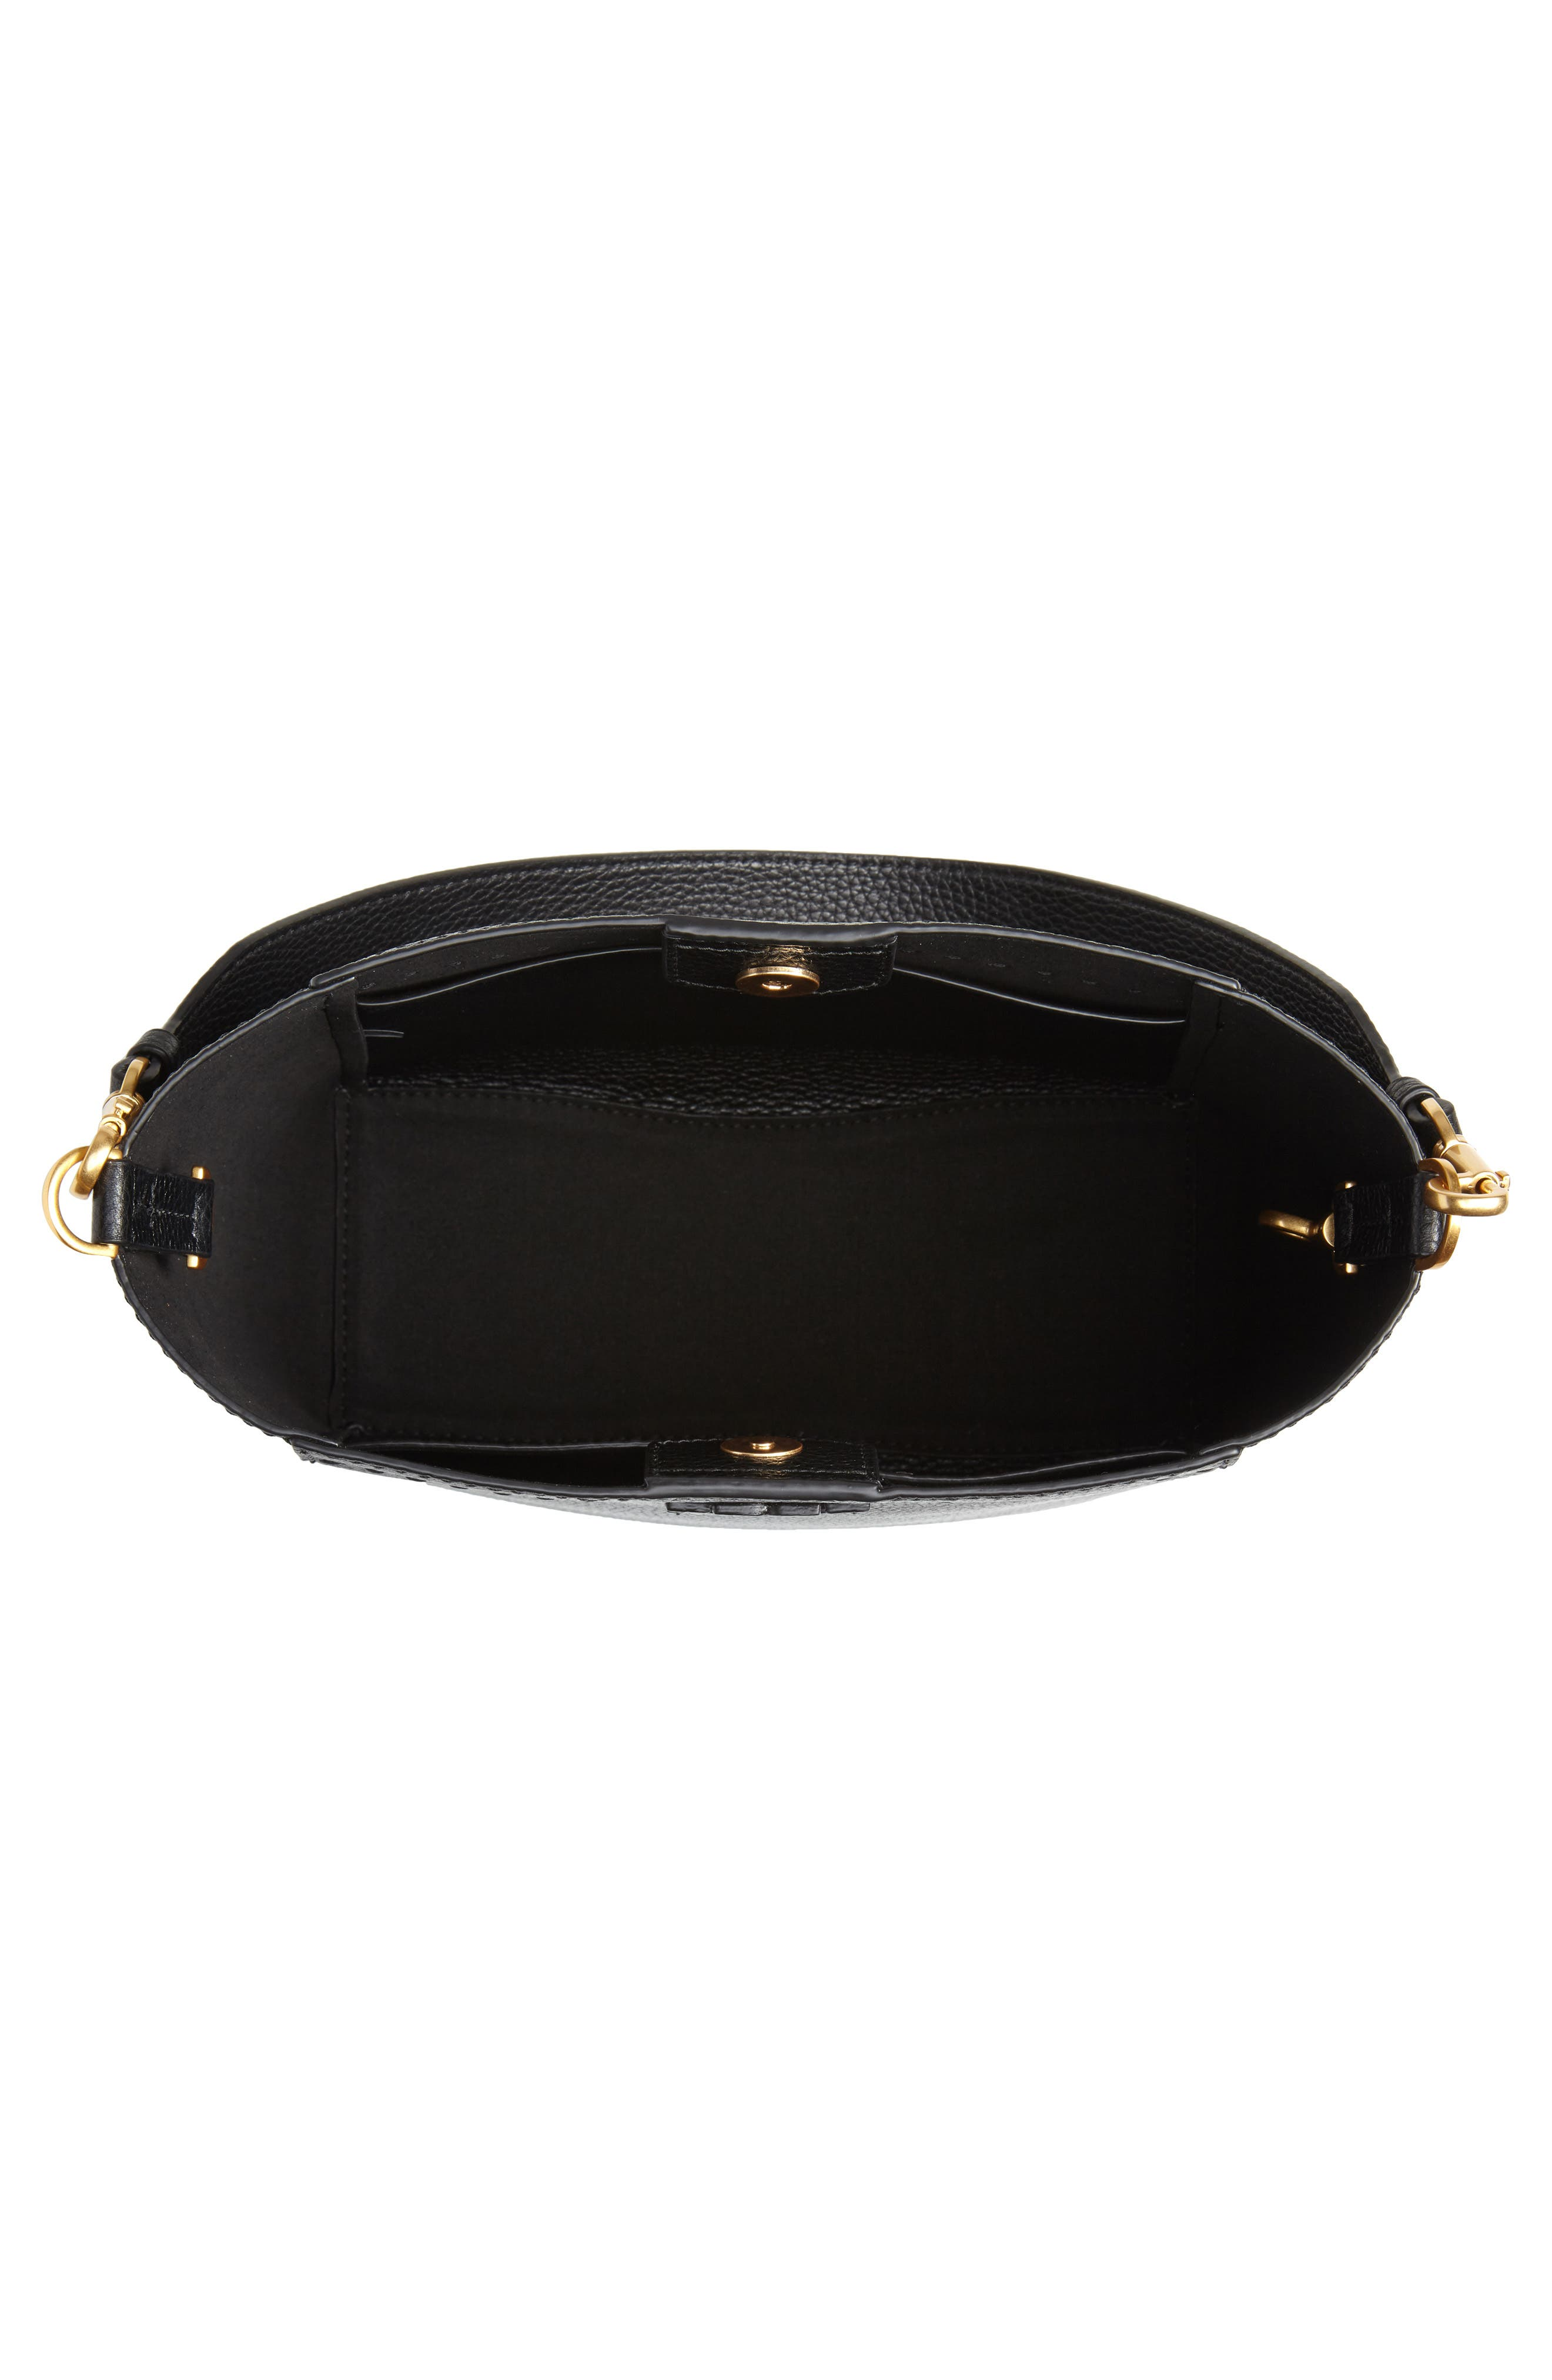 TORY BURCH, McGraw Leather Hobo, Alternate thumbnail 6, color, BLACK